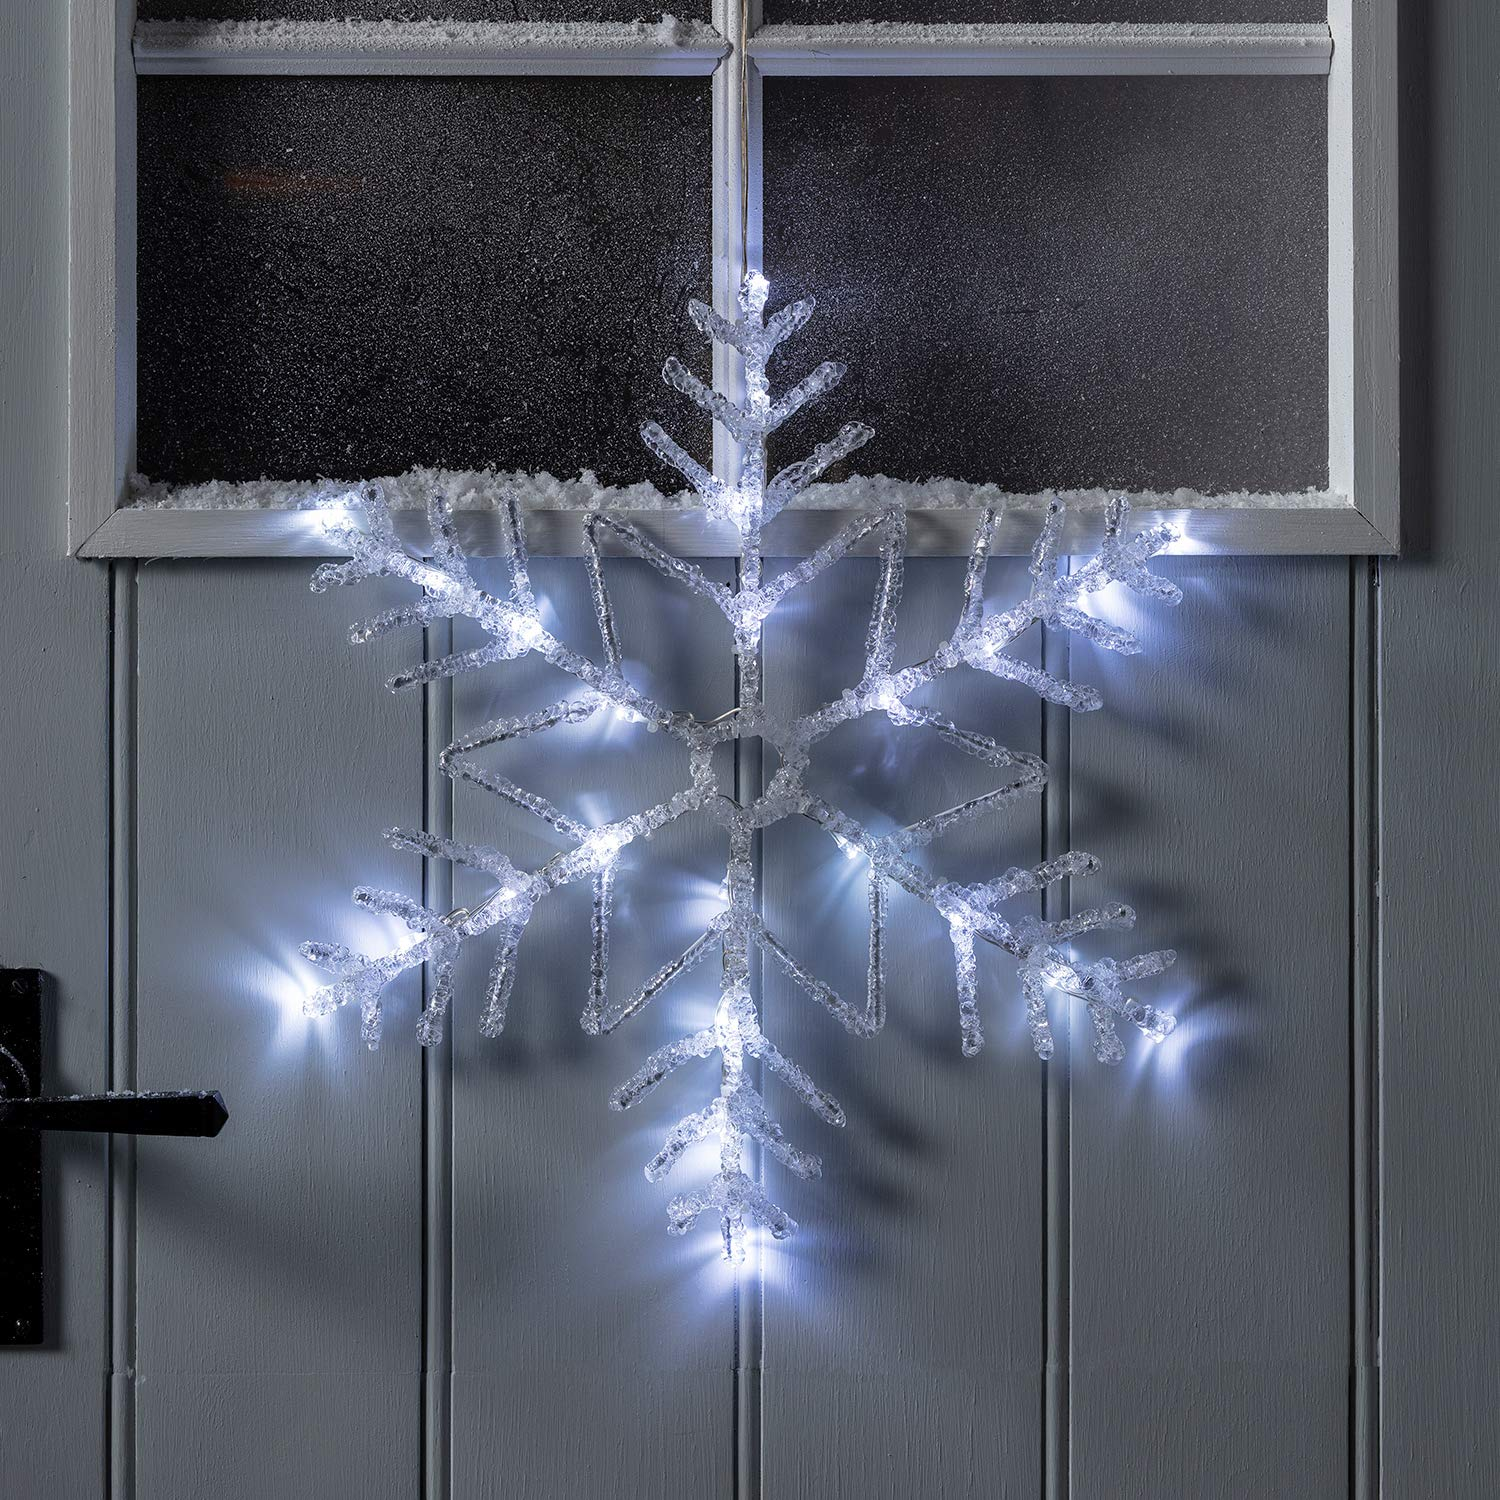 "Lights4fun, Inc. 16"" White LED Battery Operated Snowflake Outdoor Christmas Window Light Decoration"